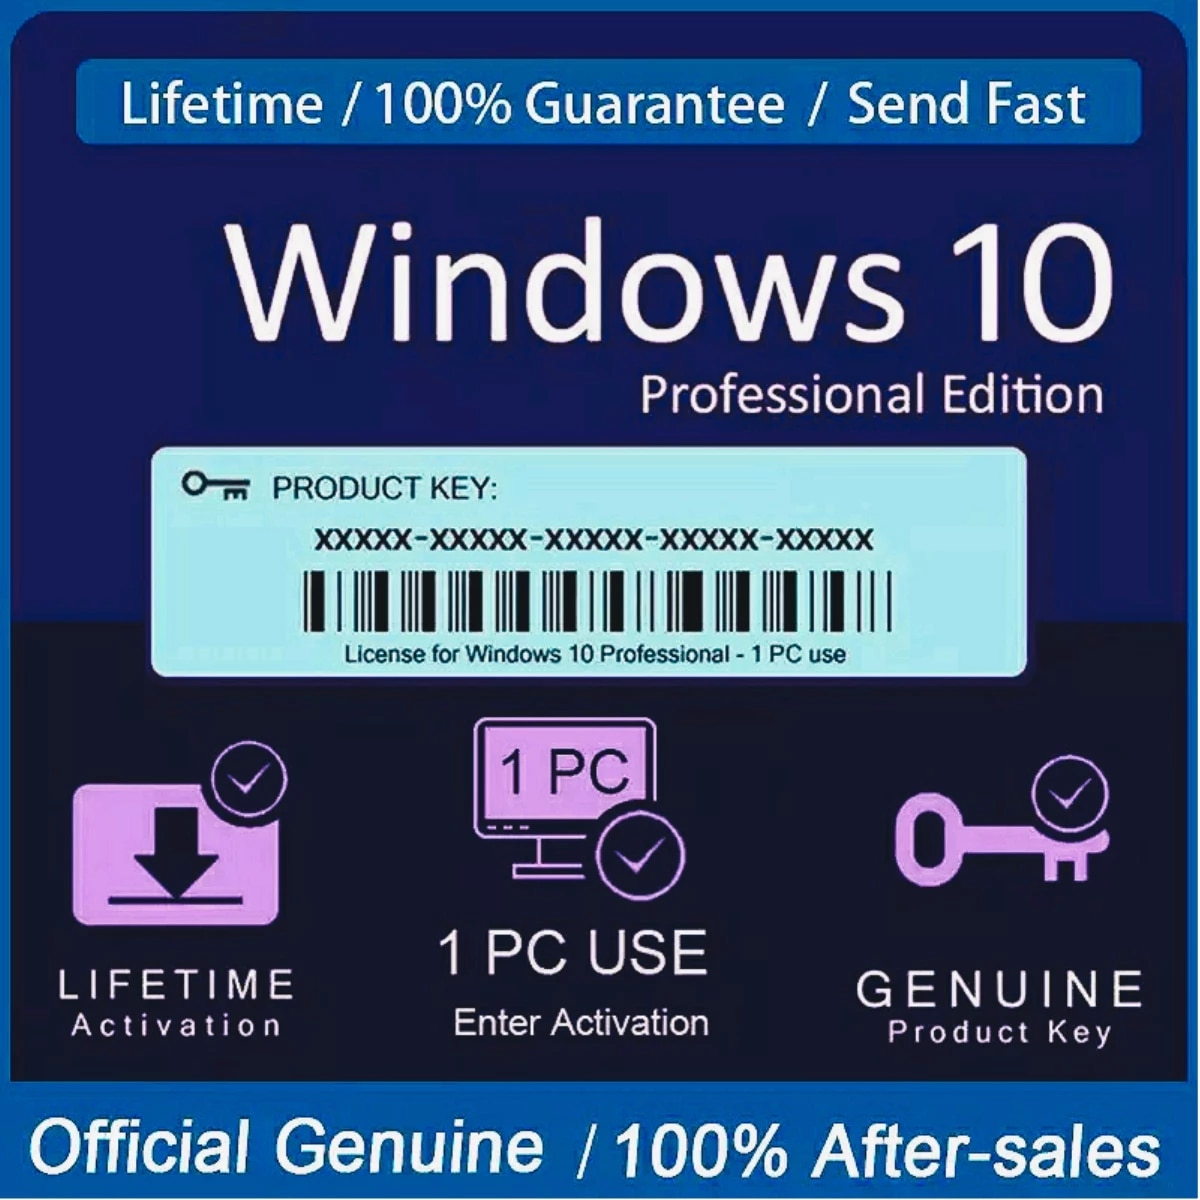 Windows-10 Pro Key Globally Activation For Lifetime✔️️